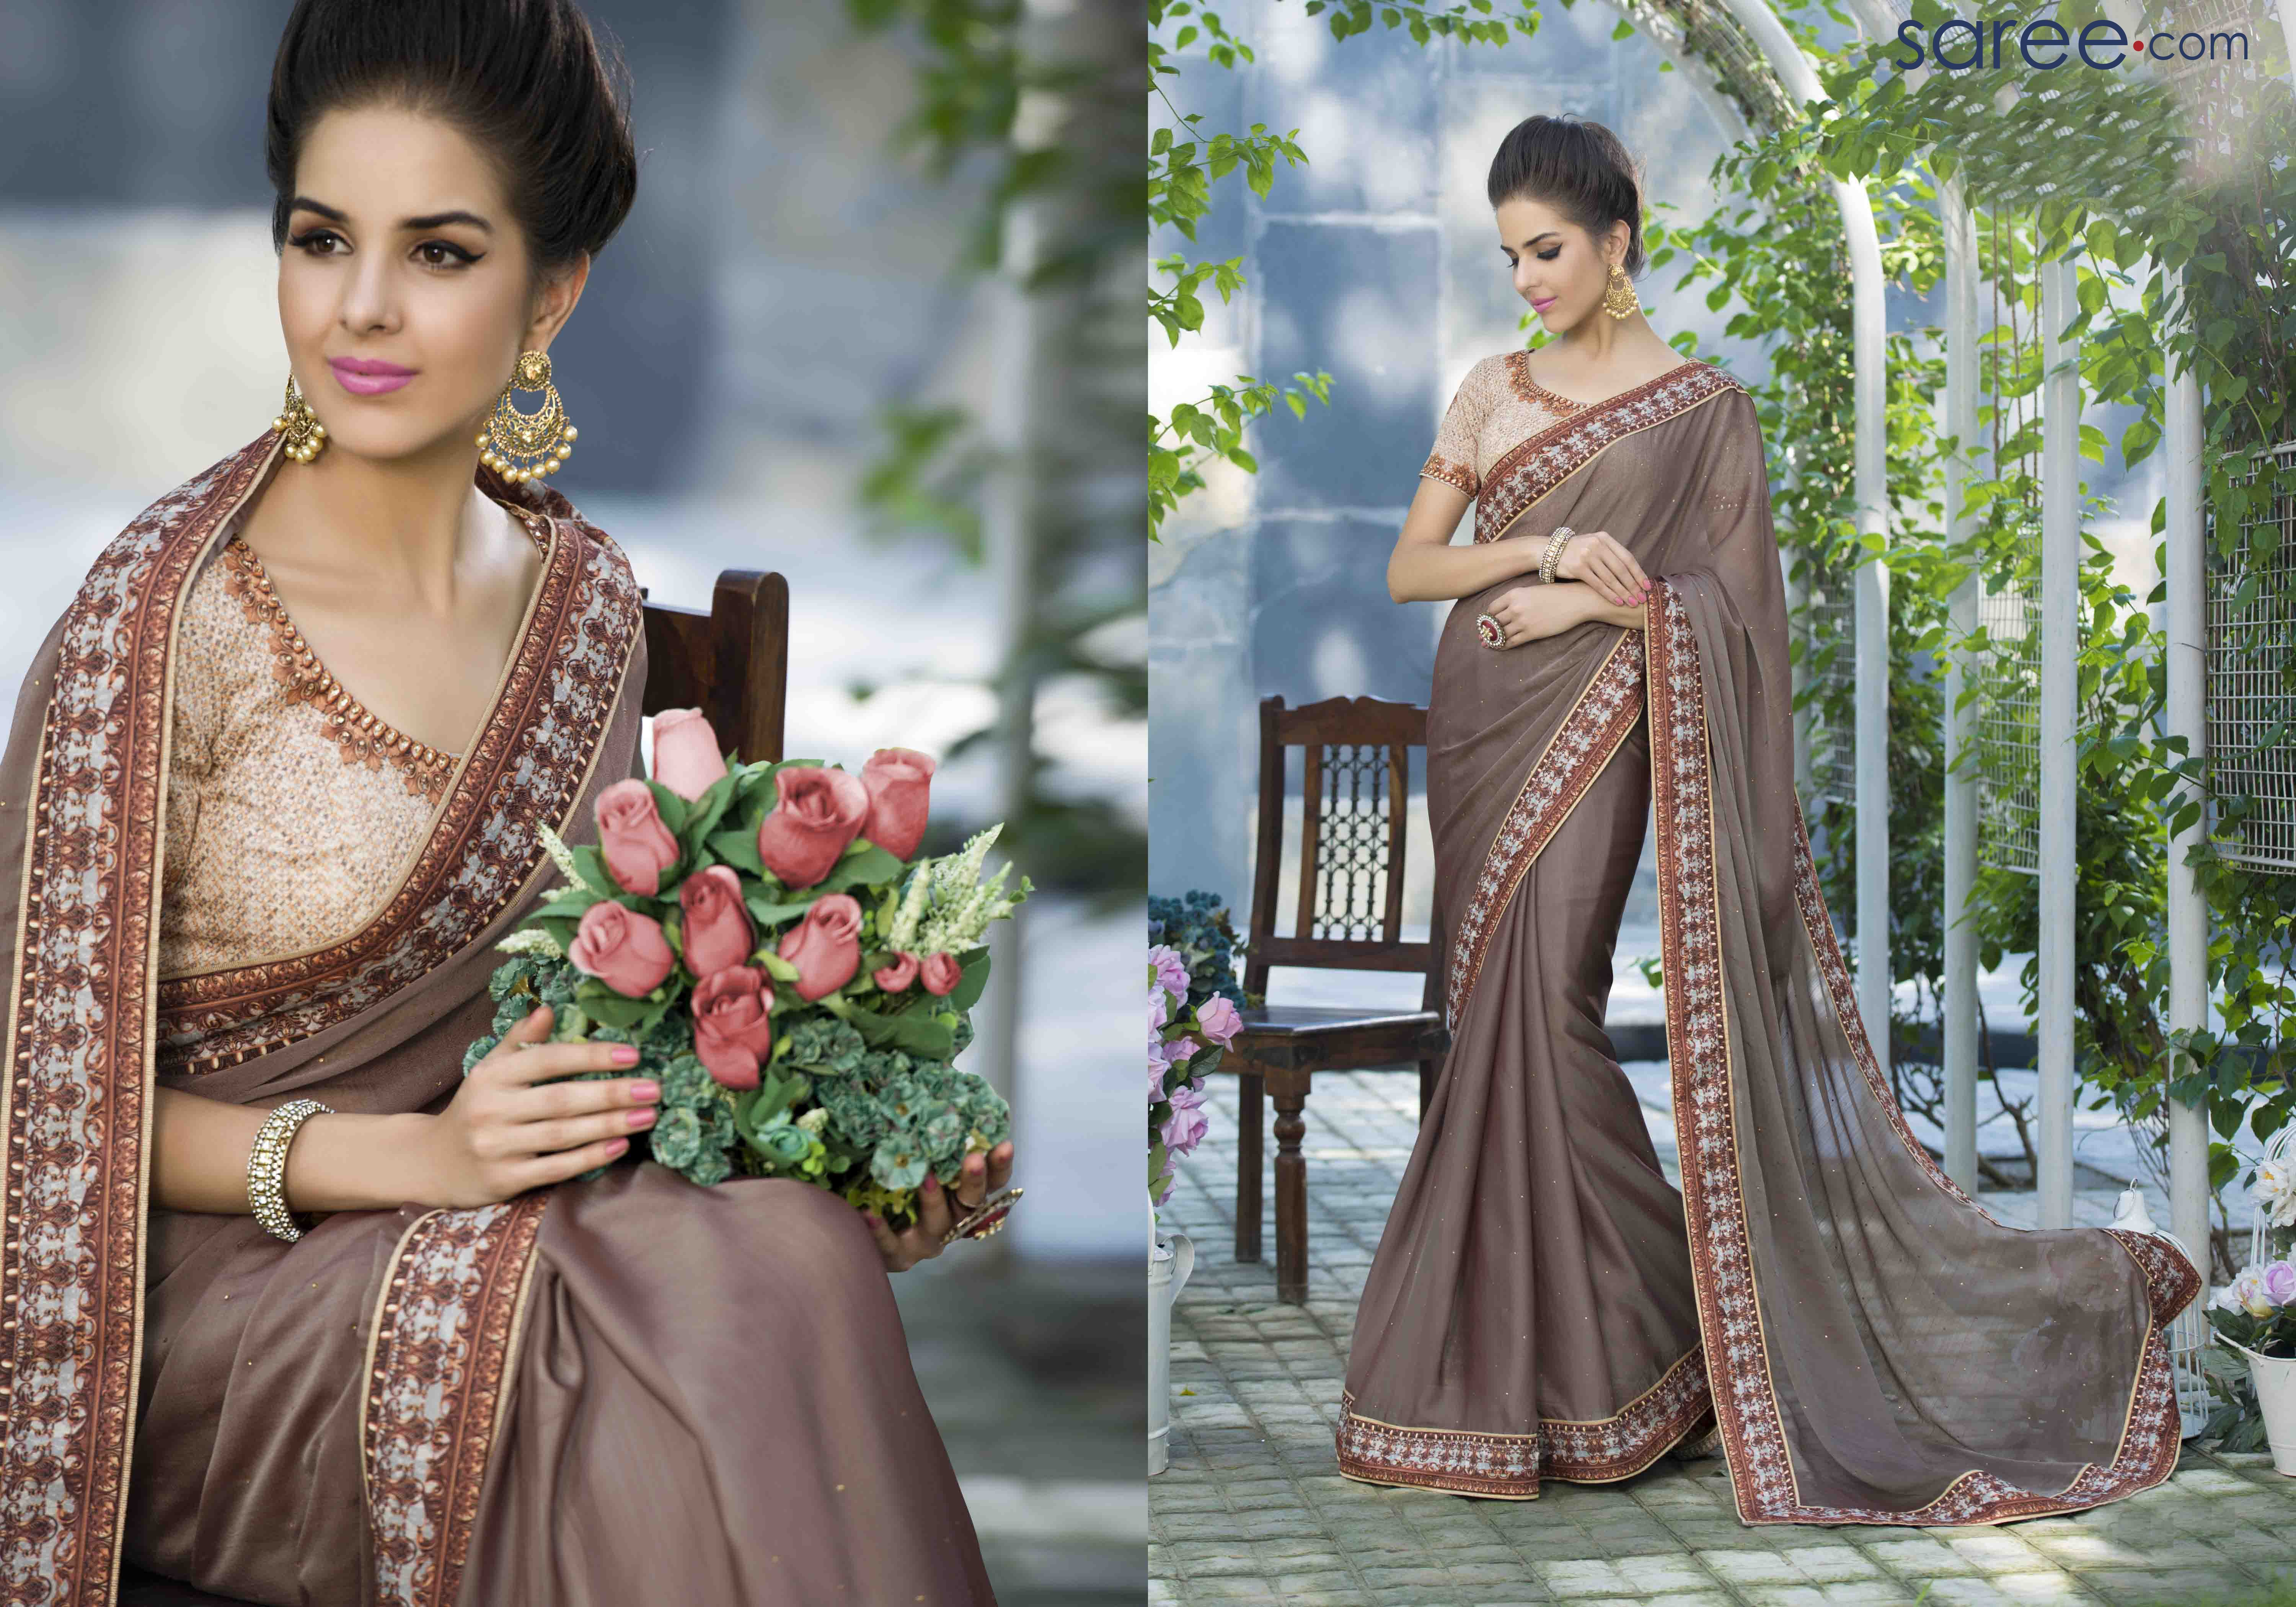 Give royal queens and princesses some serious competition, dressed in this extremely suave and elegant plain rich brown saree with a graceful, attractive border. This saree is great for first time saree wearers as well as mature women, looking to make a stylish statement.